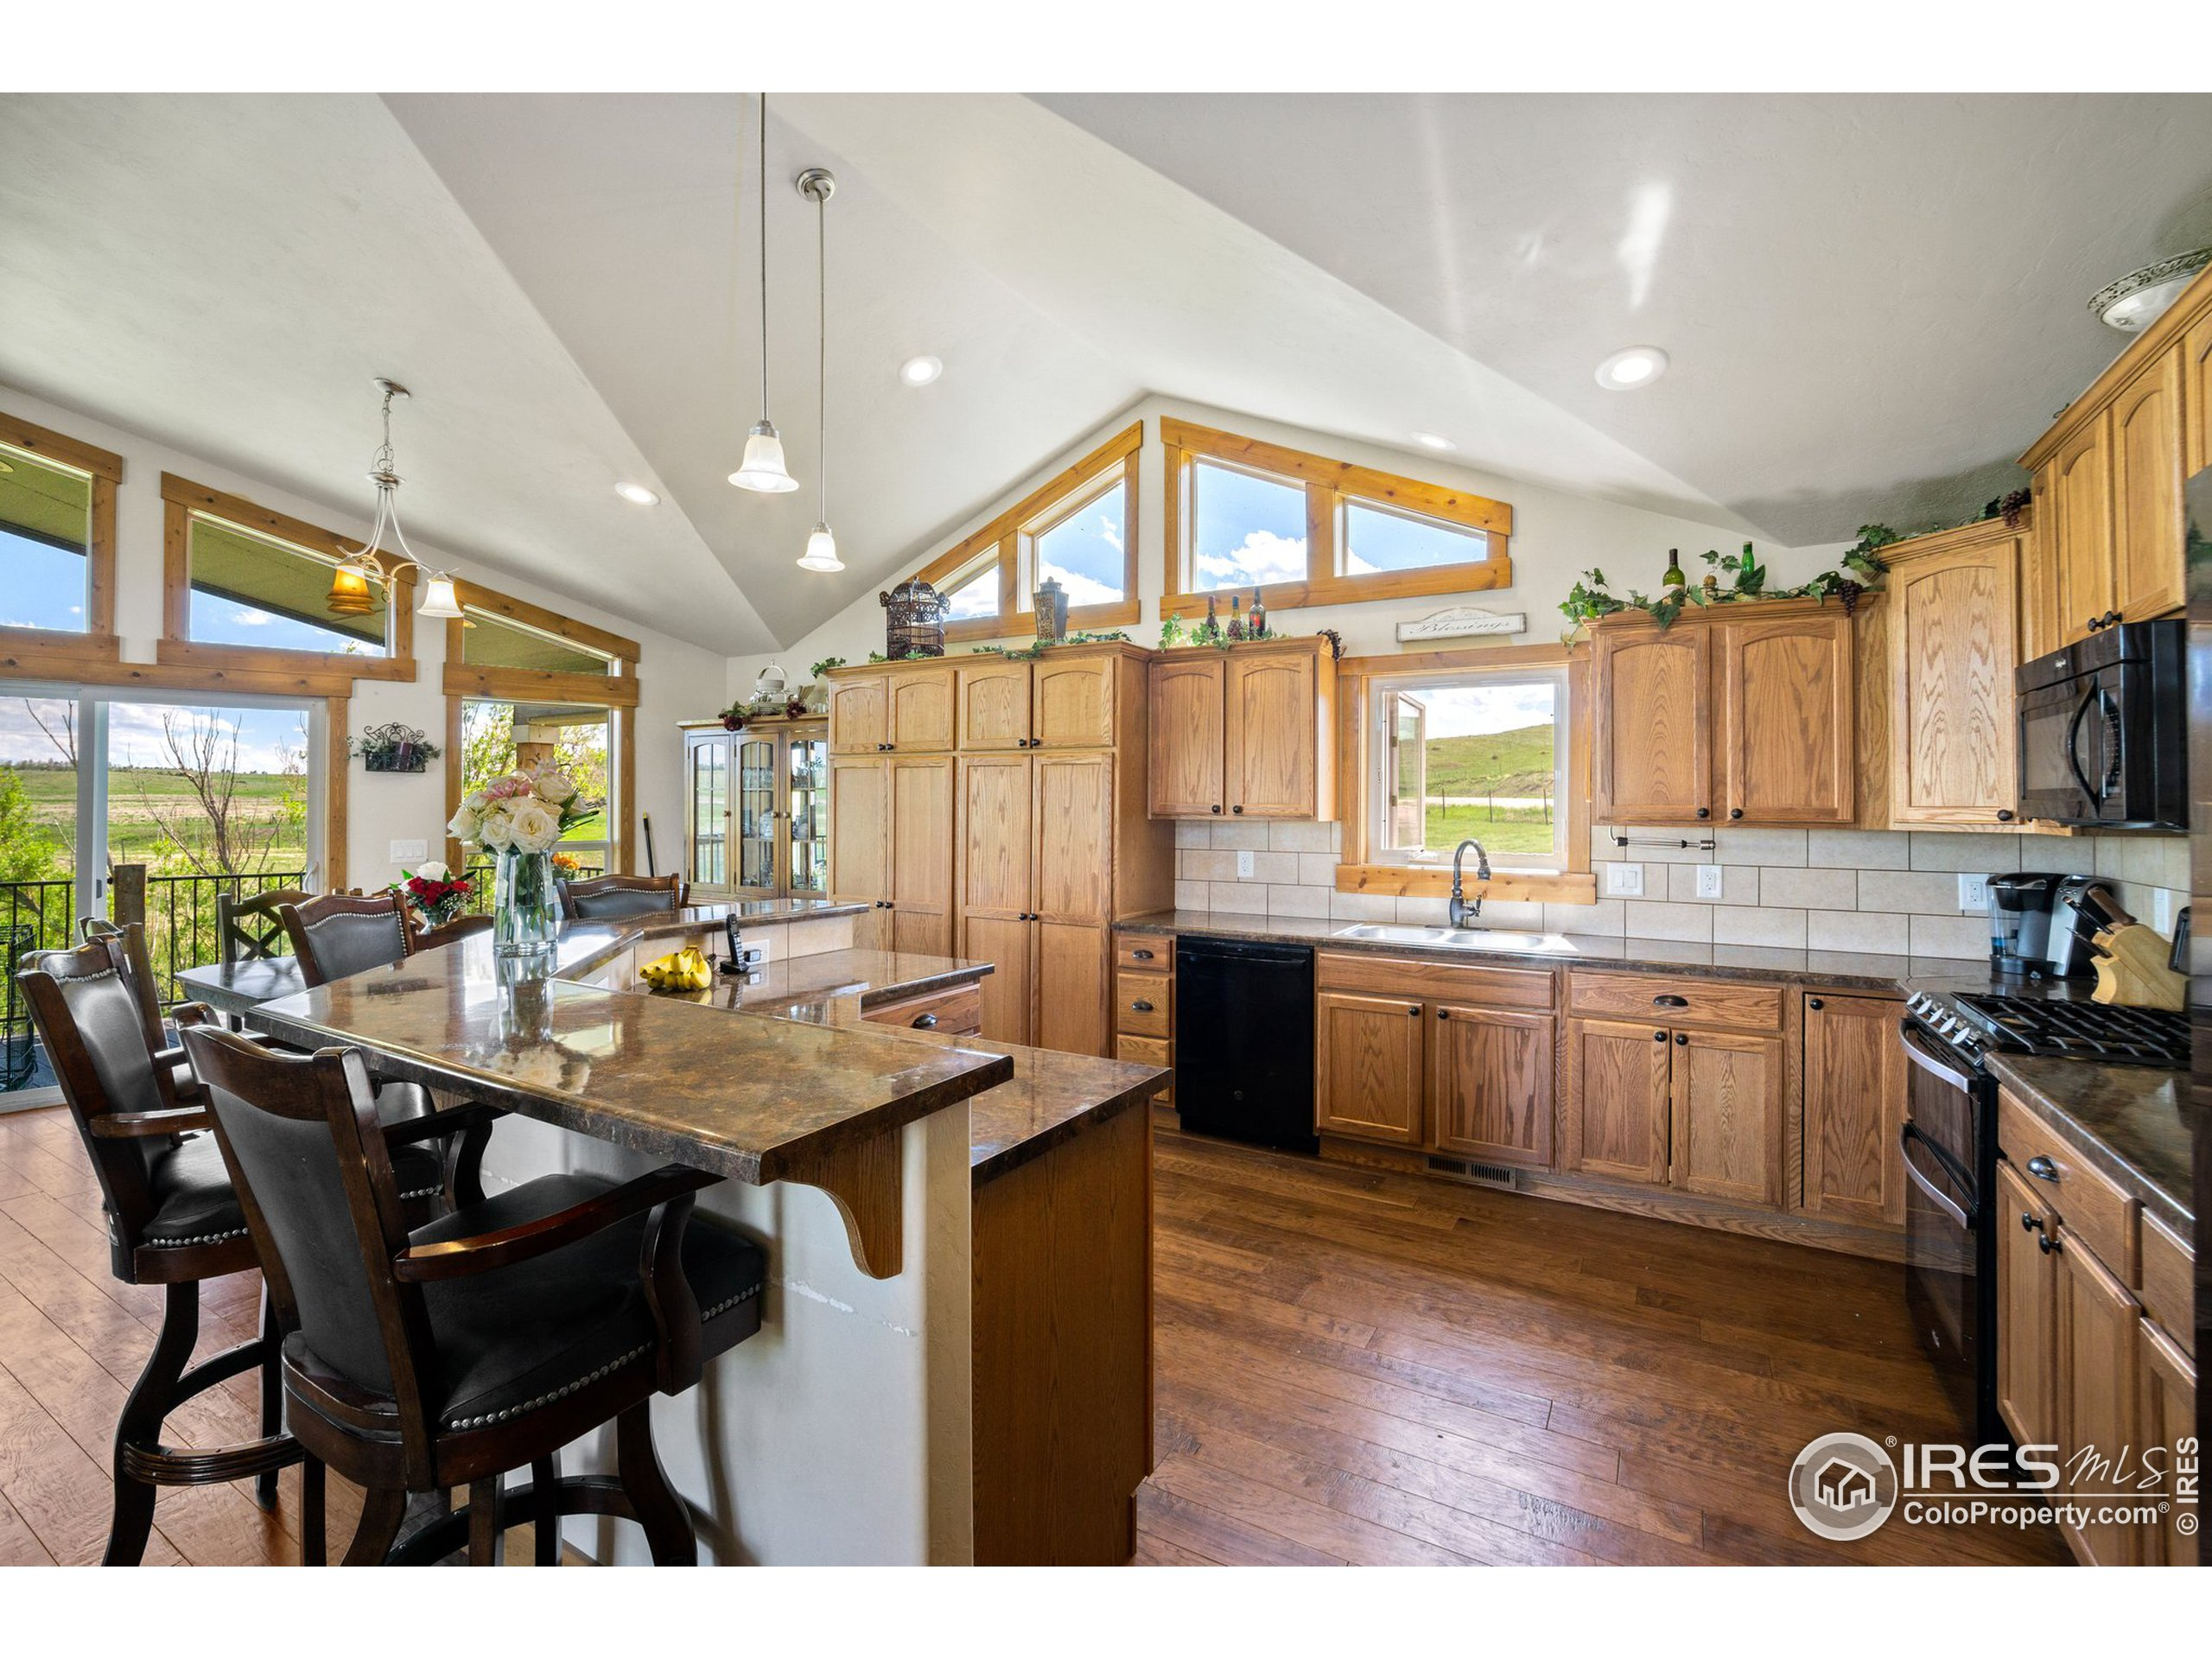 14 x 14 Kitchen / Vaulted Ceilings / Wood Floors / Ample bar Seating